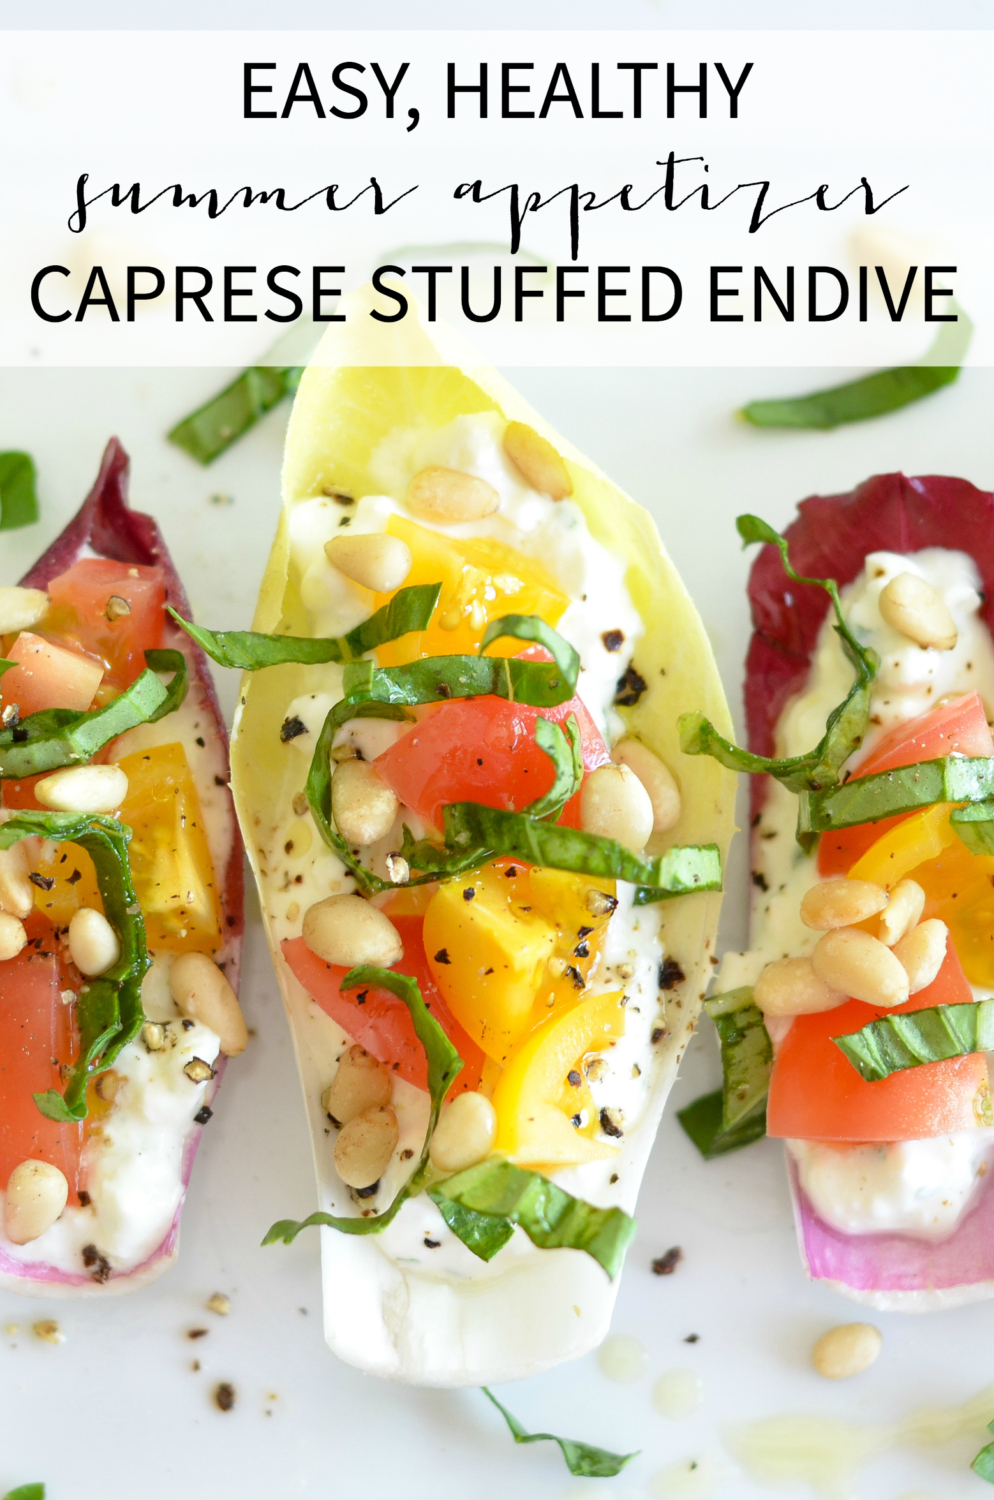 Easy stuffed endive recipe - high in protein thanks to cottage cheese! Perfect summer appetizer idea that's ready in minutes.